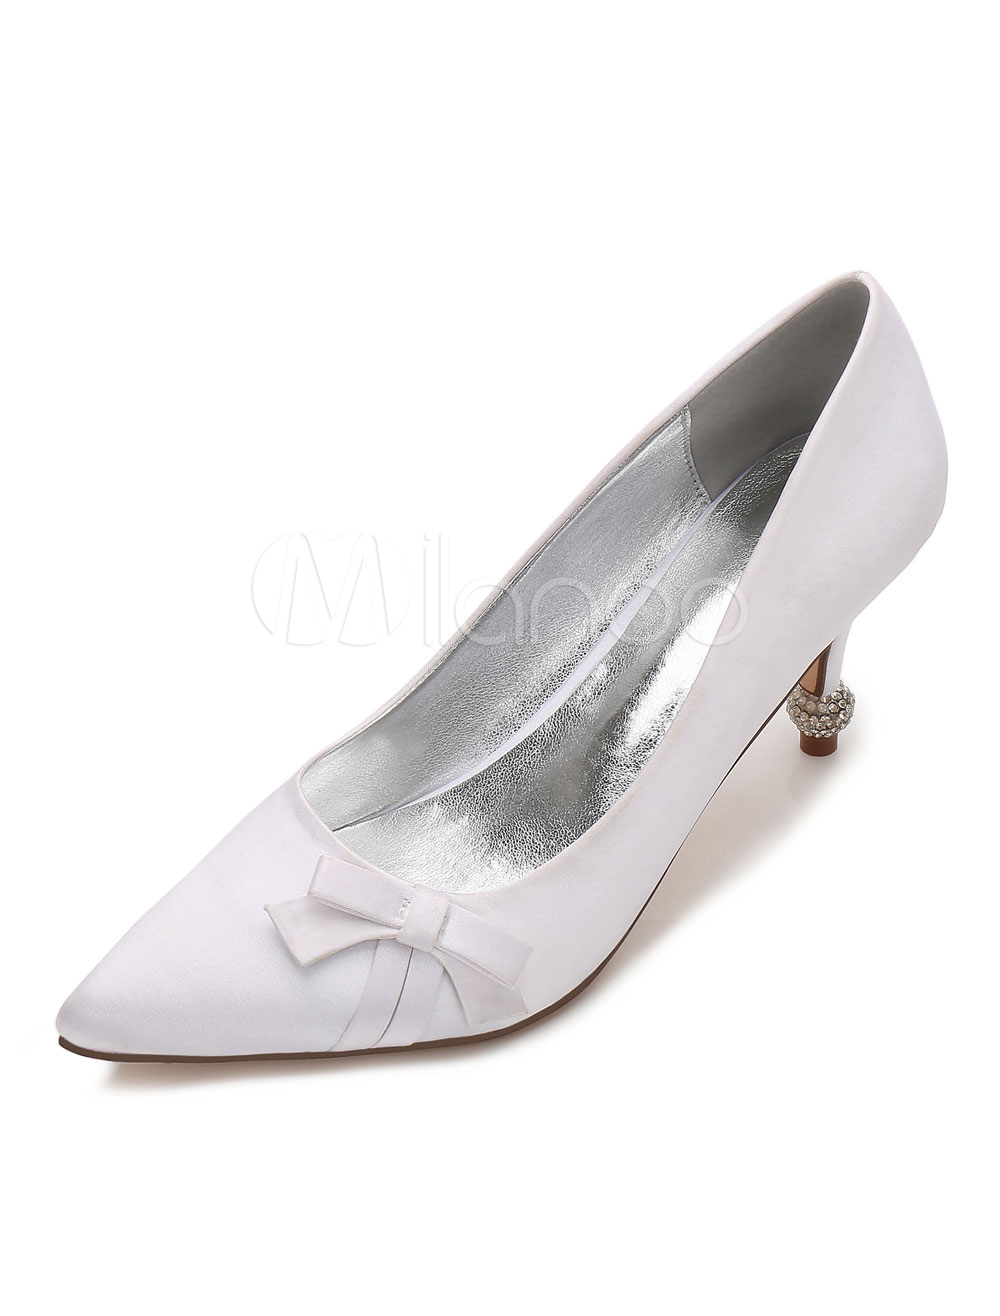 Buy White Wedding Shoes Satin Pointed Toe Bow Slip On Kitten Heel Bridal Shoes for $47.69 in Milanoo store